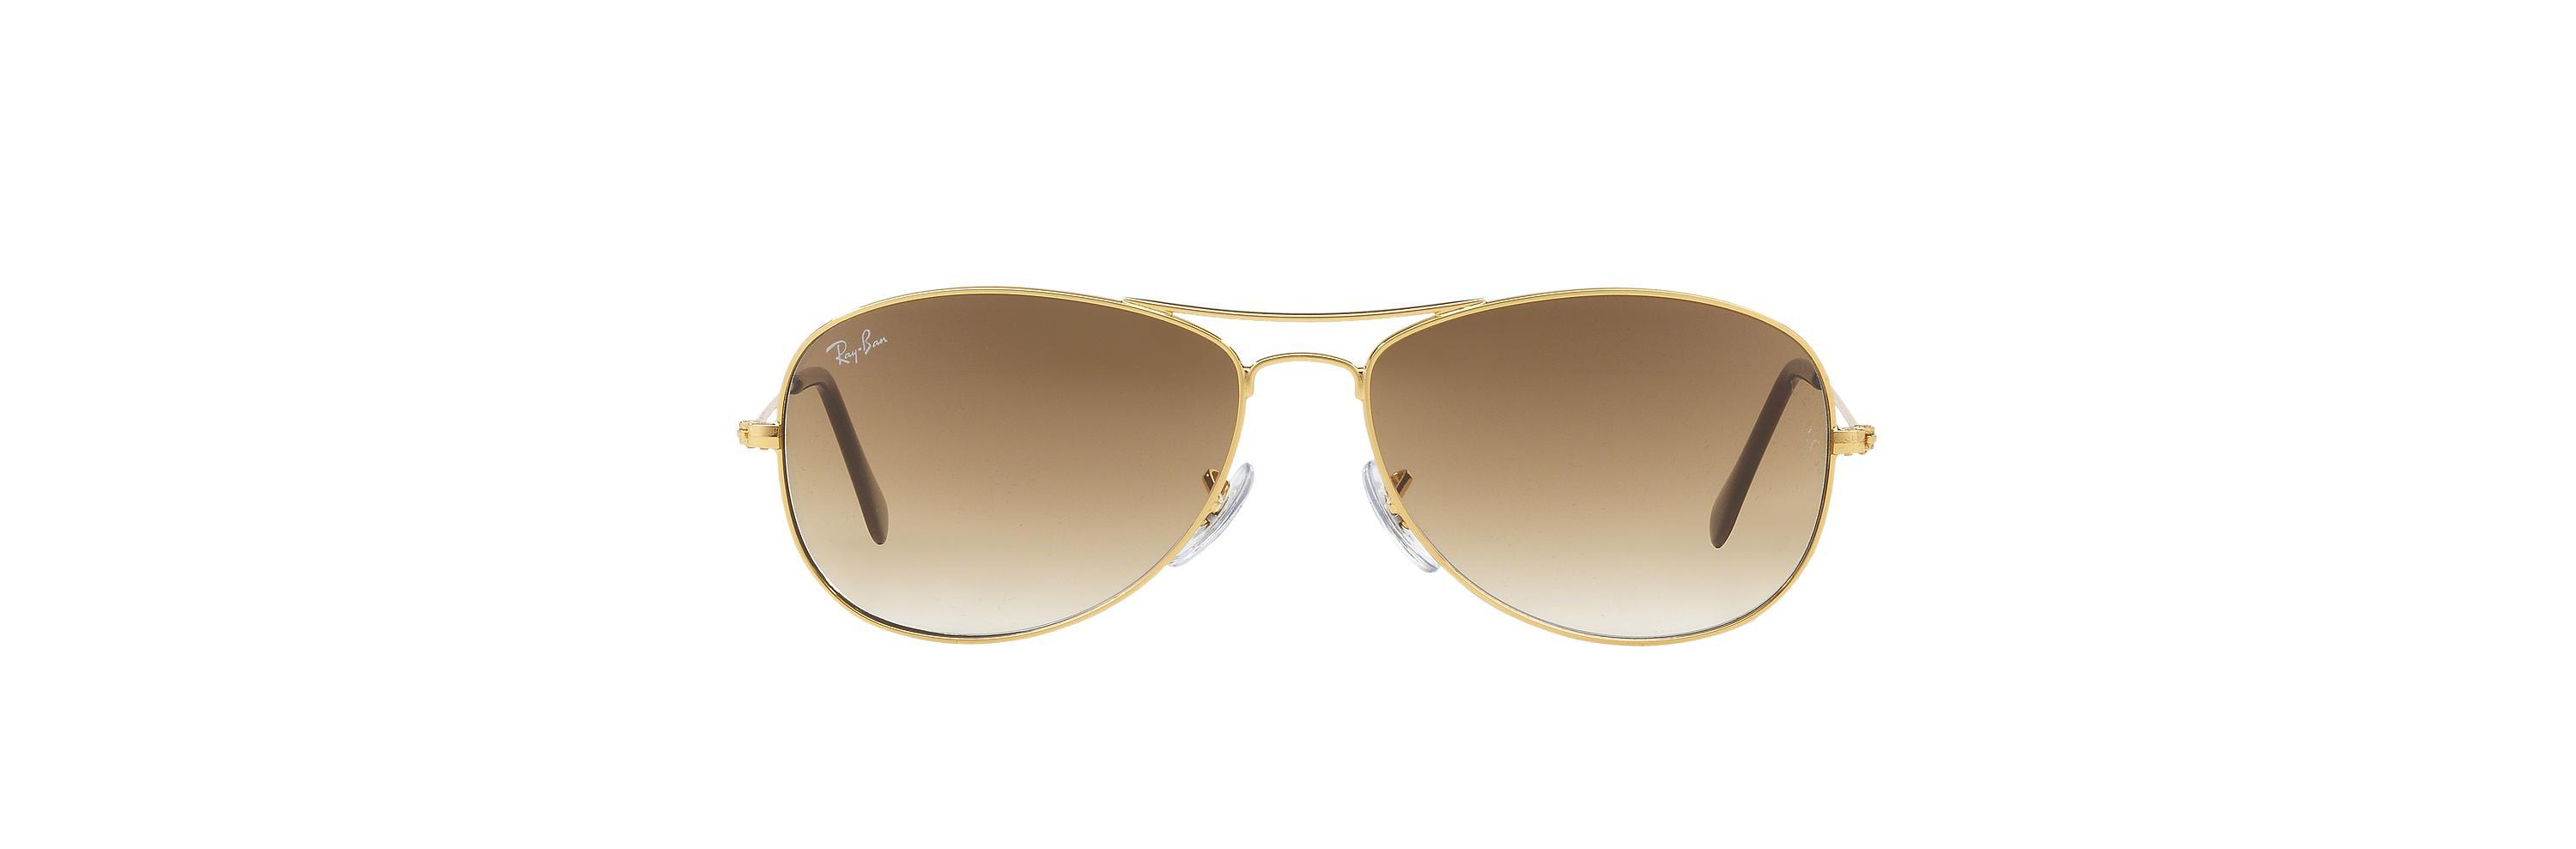 0afcf32588 Lyst - Ray-Ban Rb3362 59 Cockpit Gradient Collection in Brown for Men